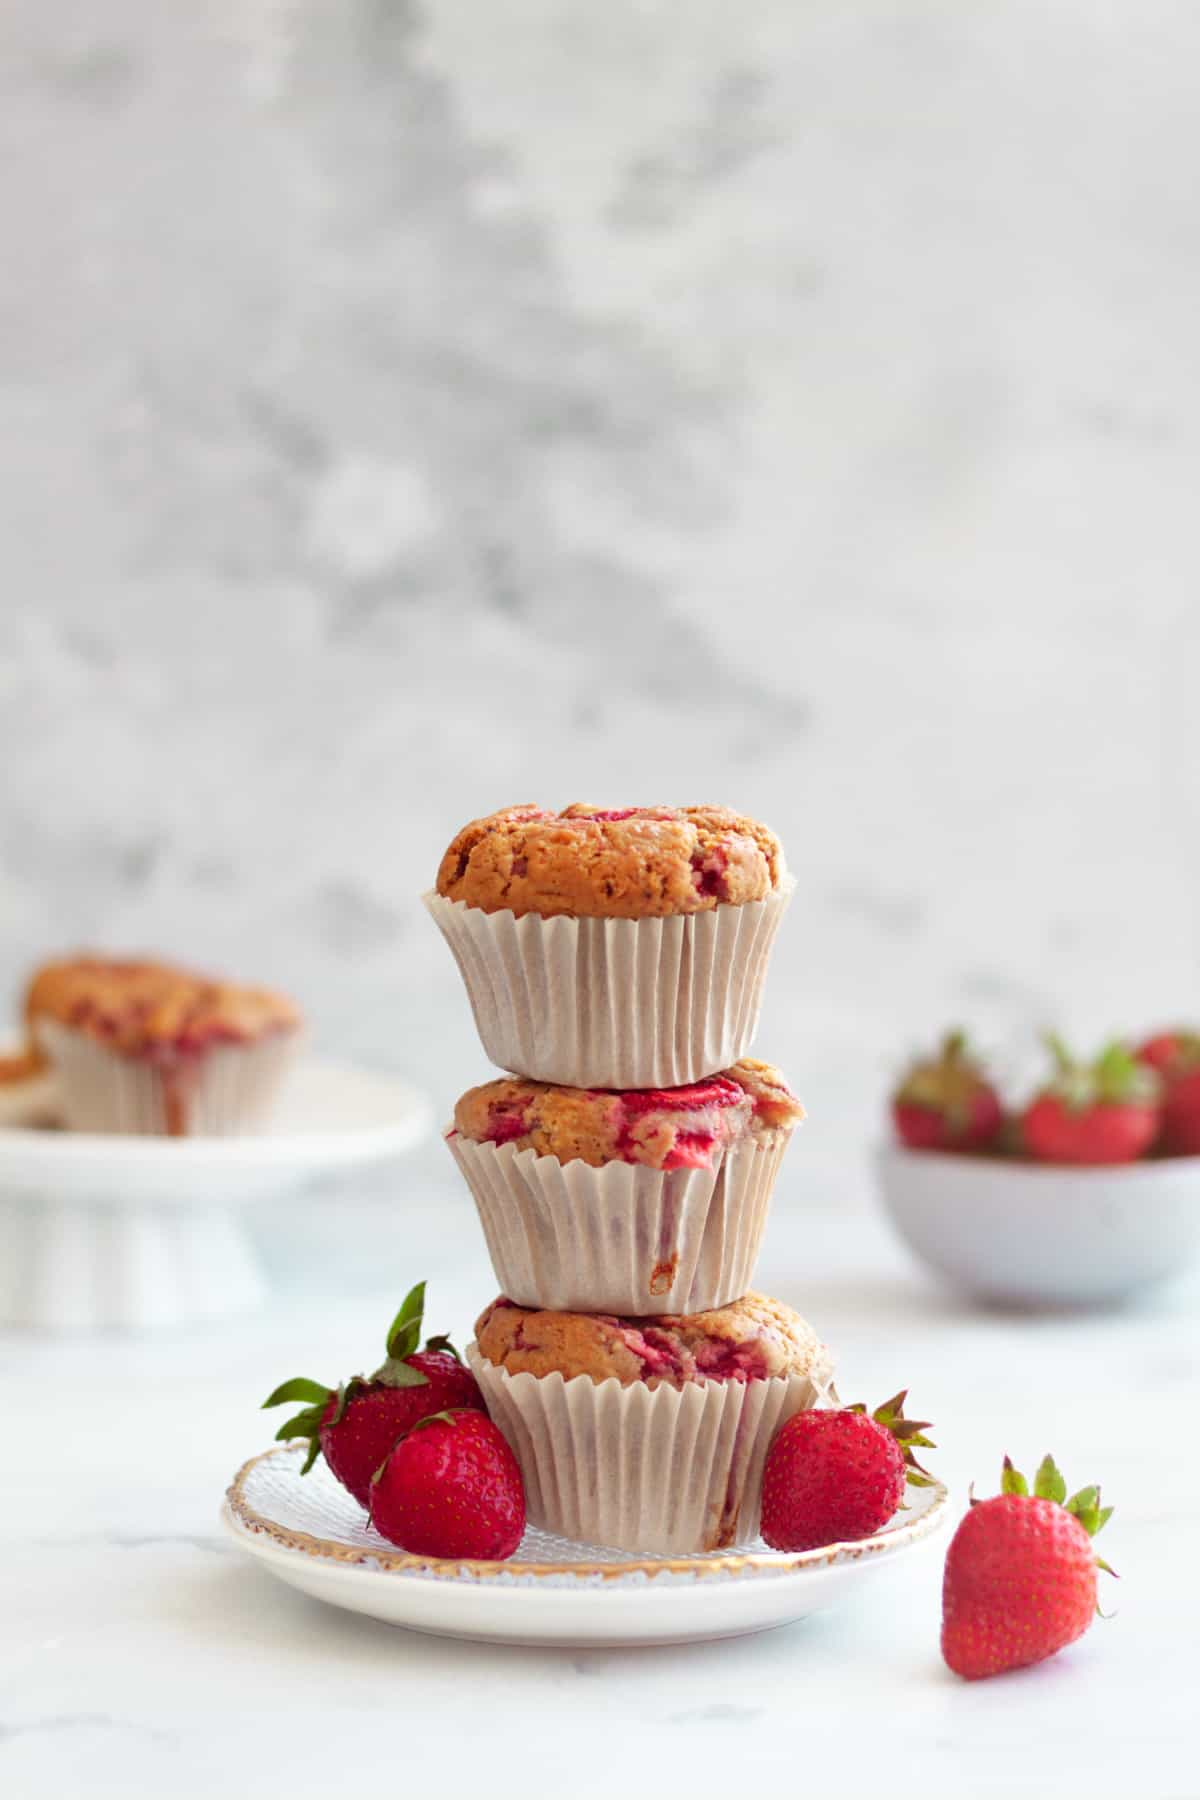 a stack of 3 strawberry muffins surrounded by fresh strawberries on a white background.